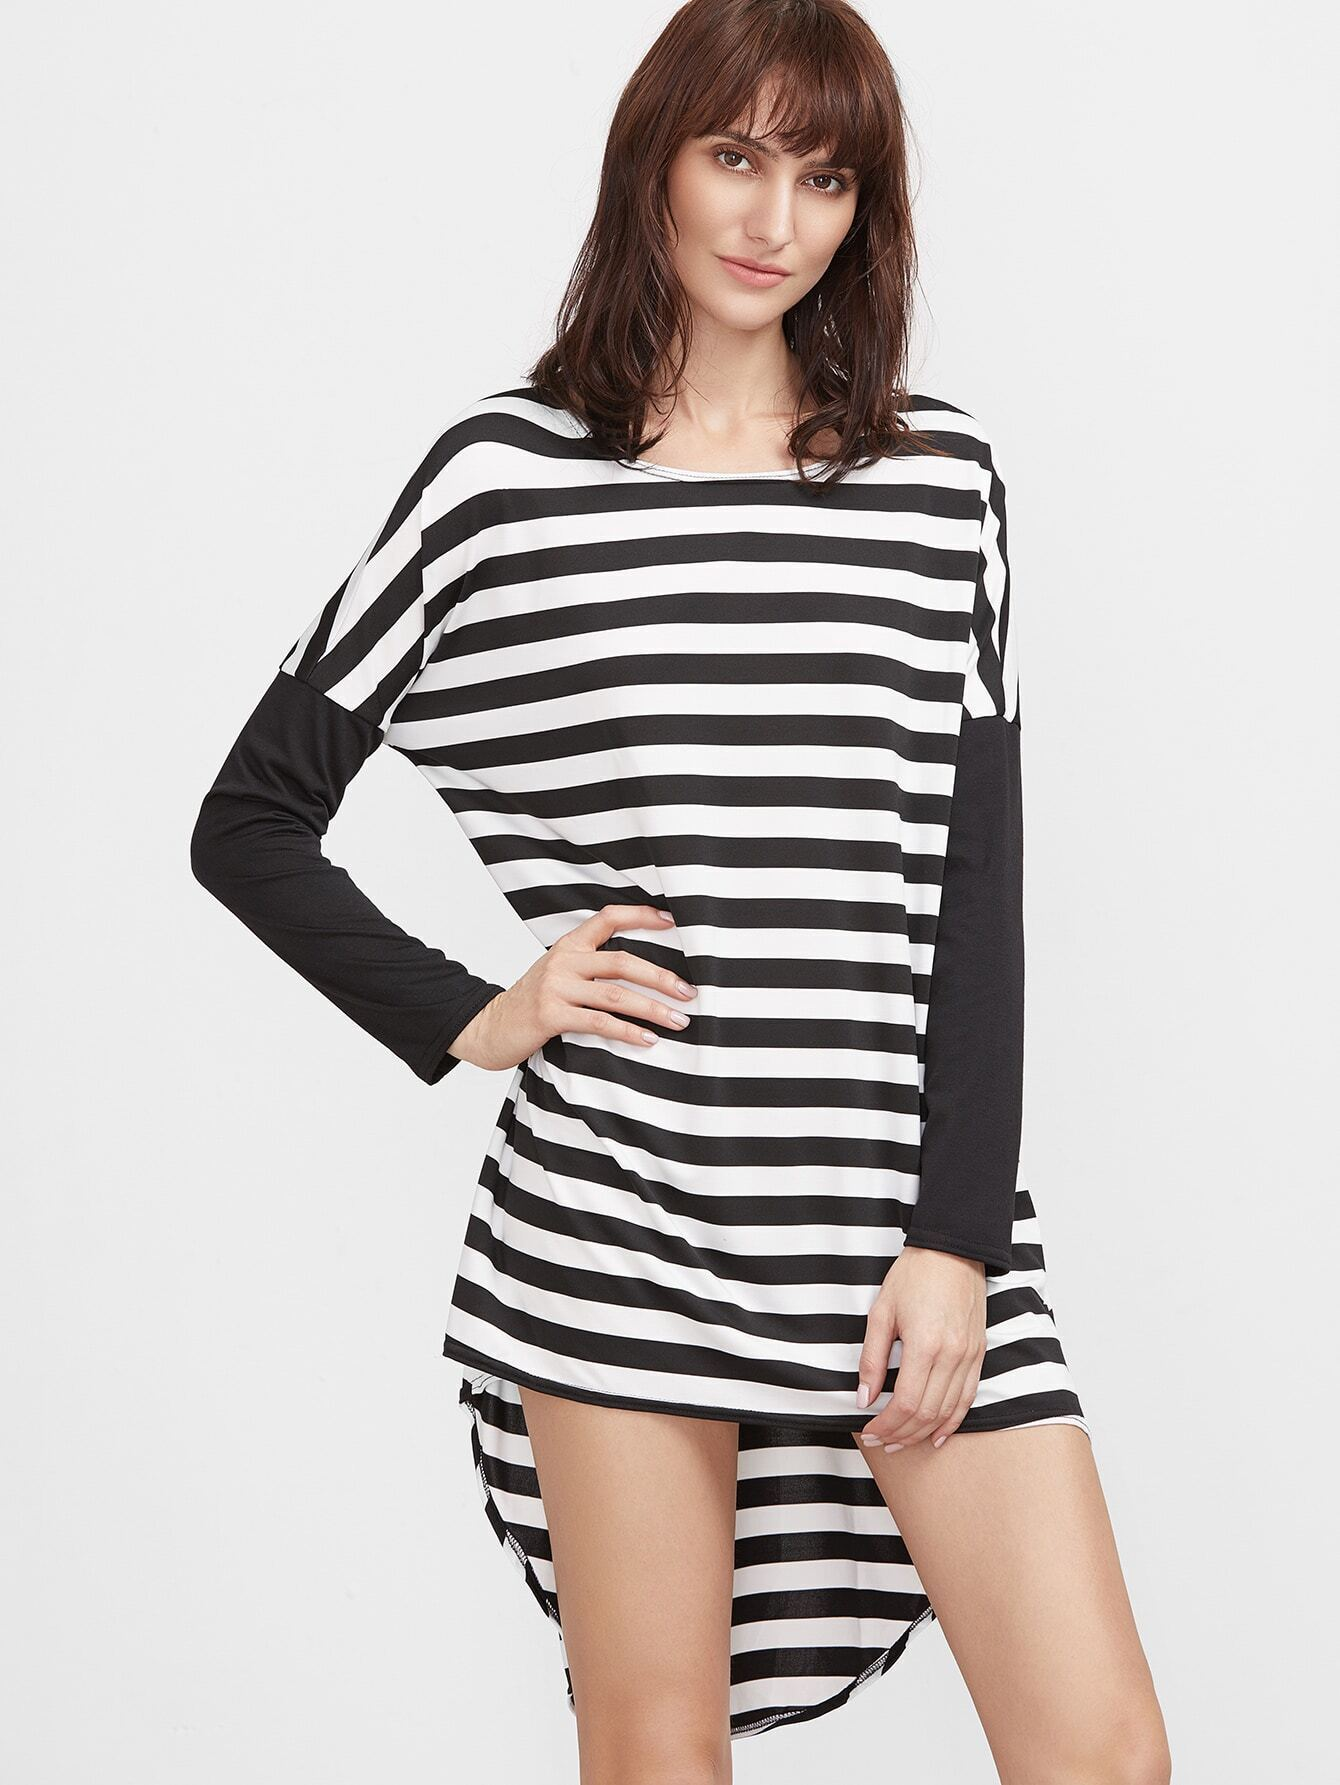 Buy Contrast Striped Drop Shoulder High Low Tee Dress